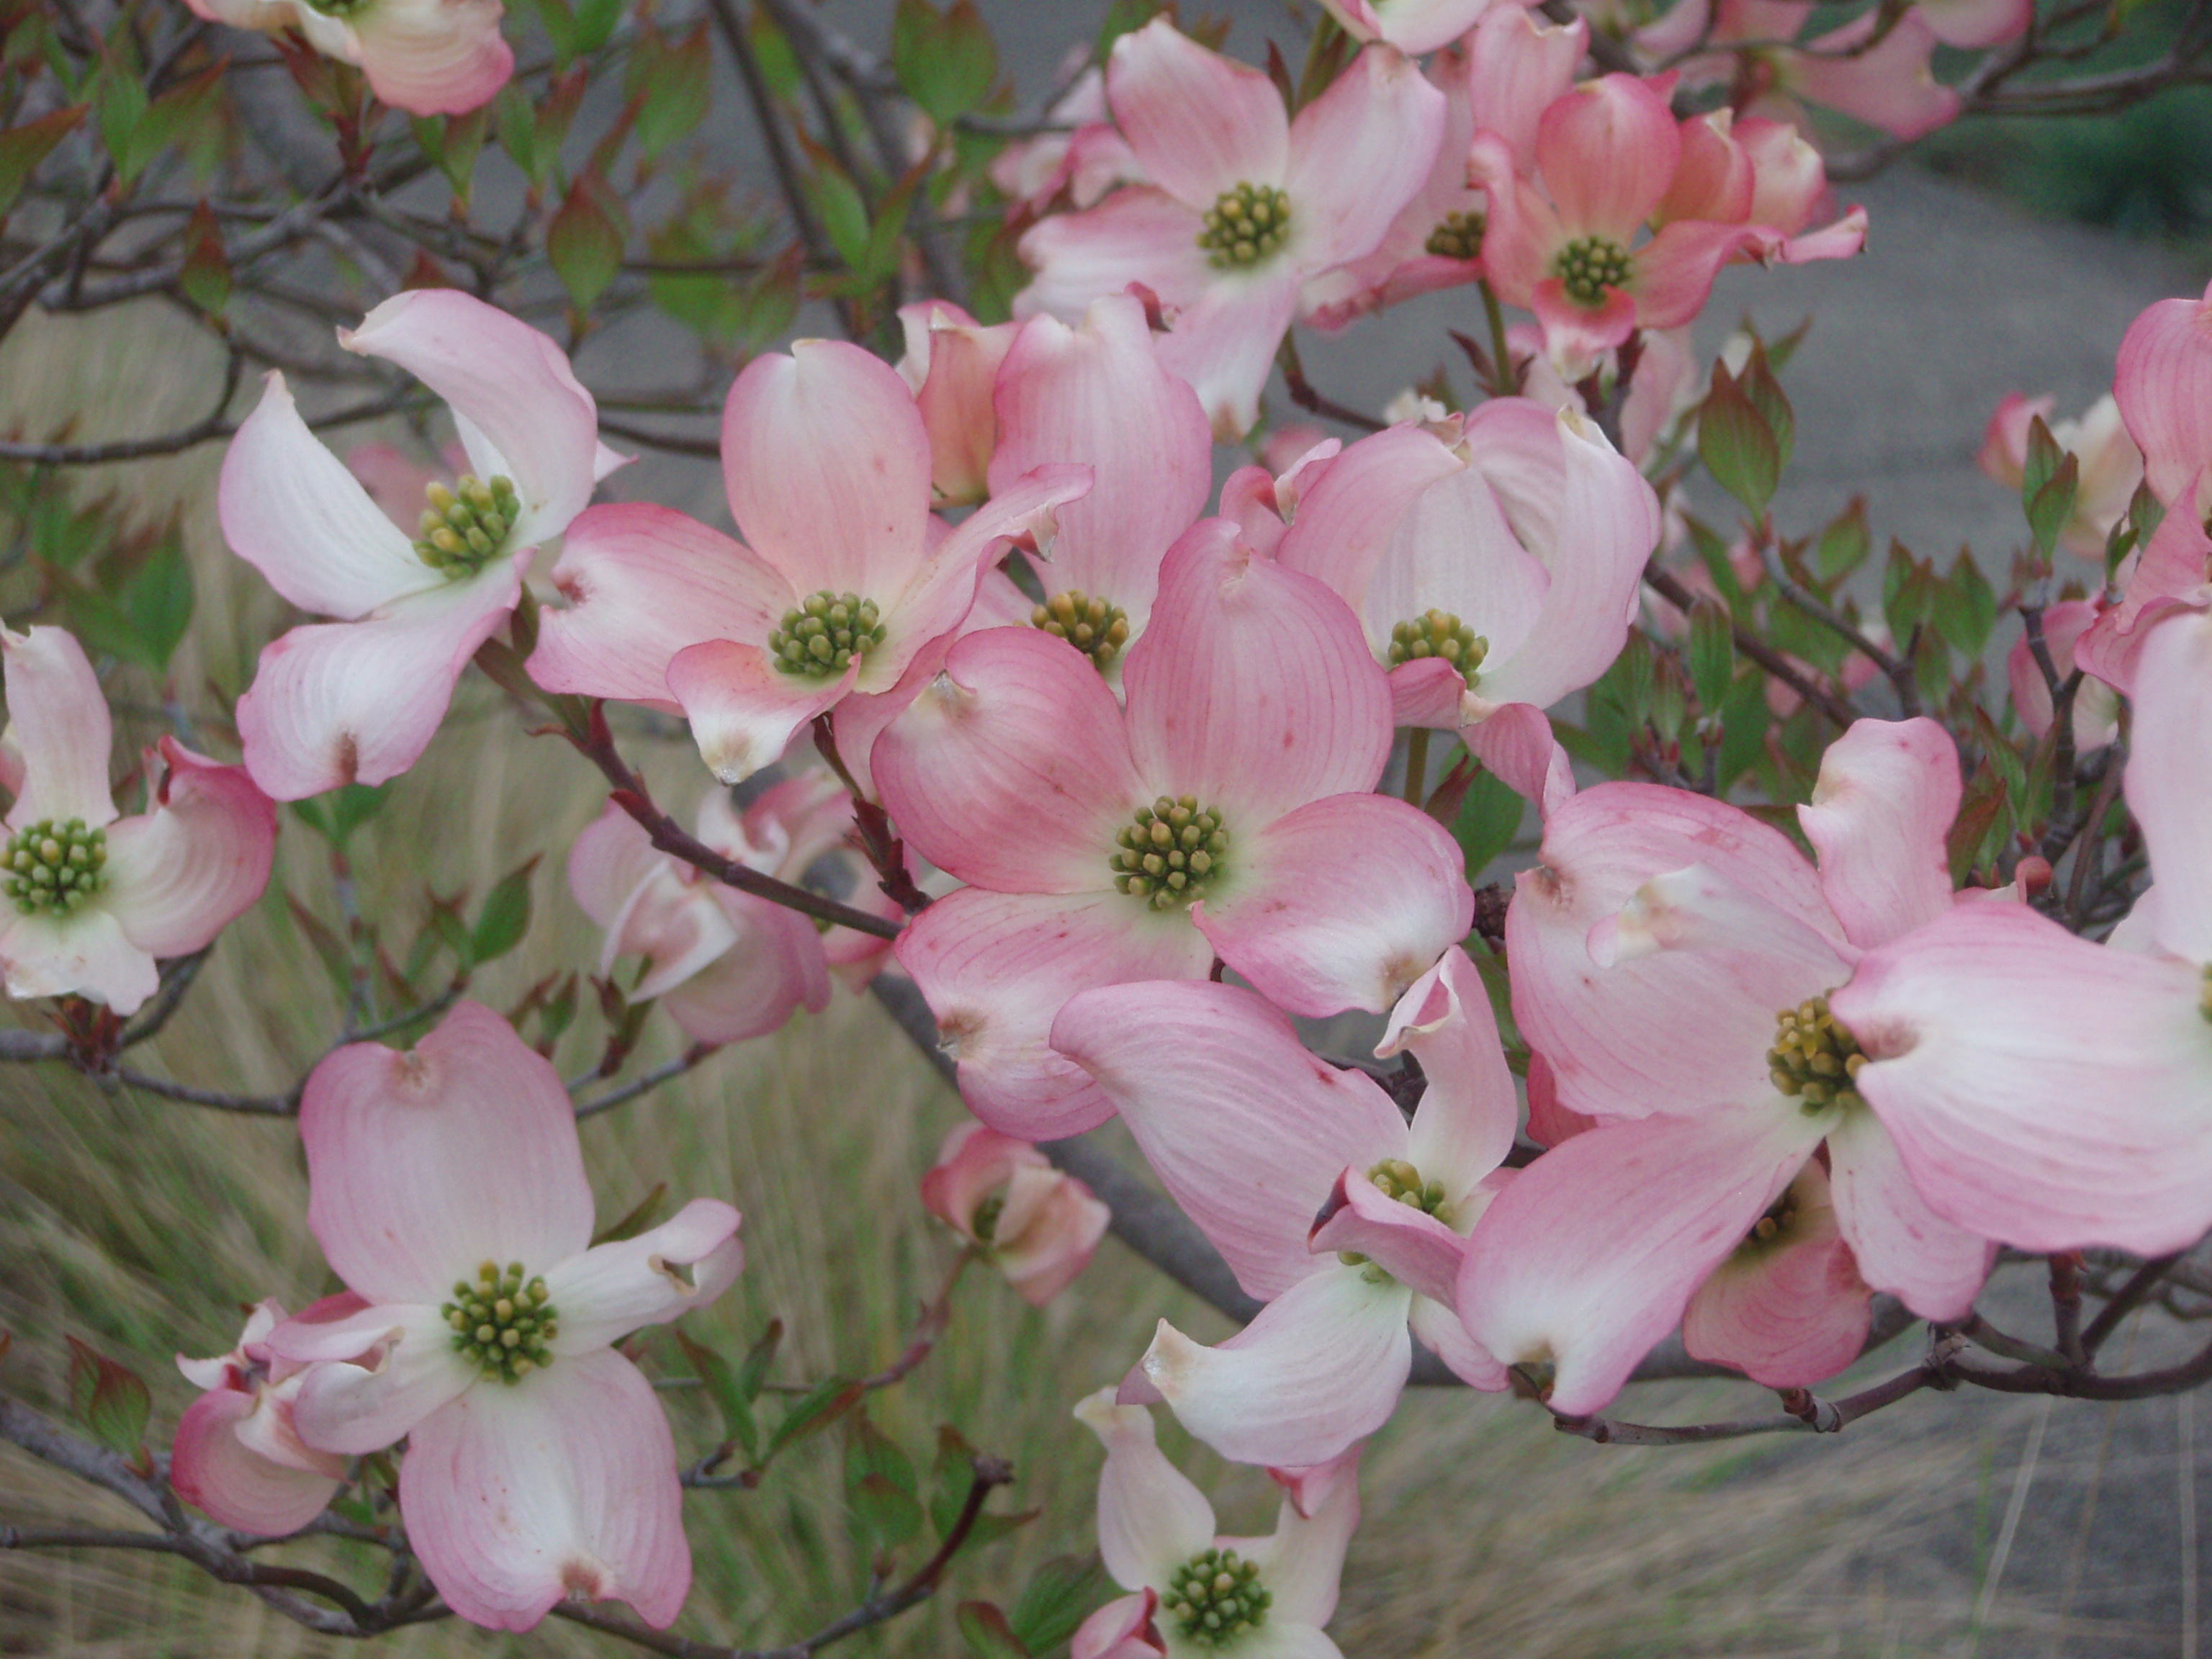 Pink dogwood blossoms | Messages from the fifth dimension - photo#43